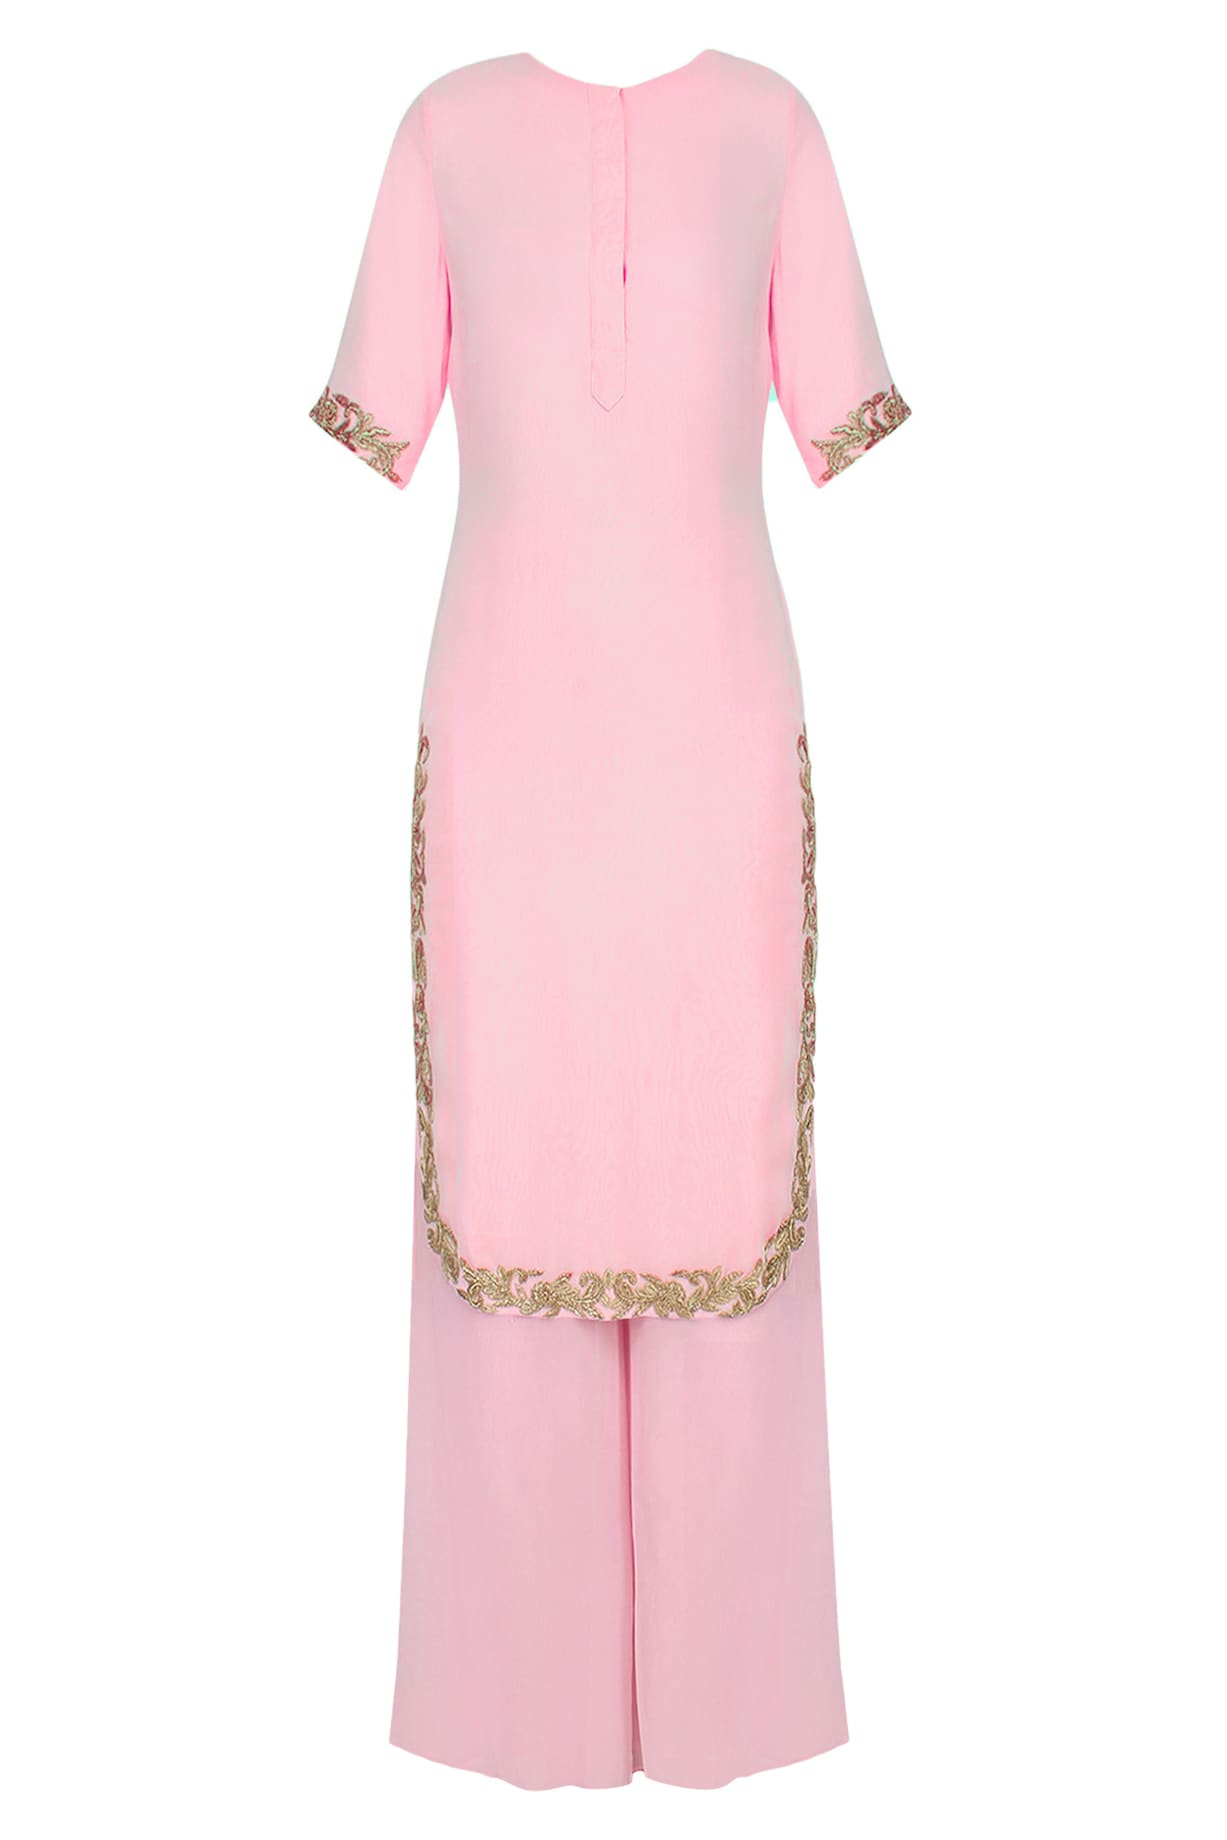 44fbb76c840d Pink and gold embroidered kurta and pants set available only at ...